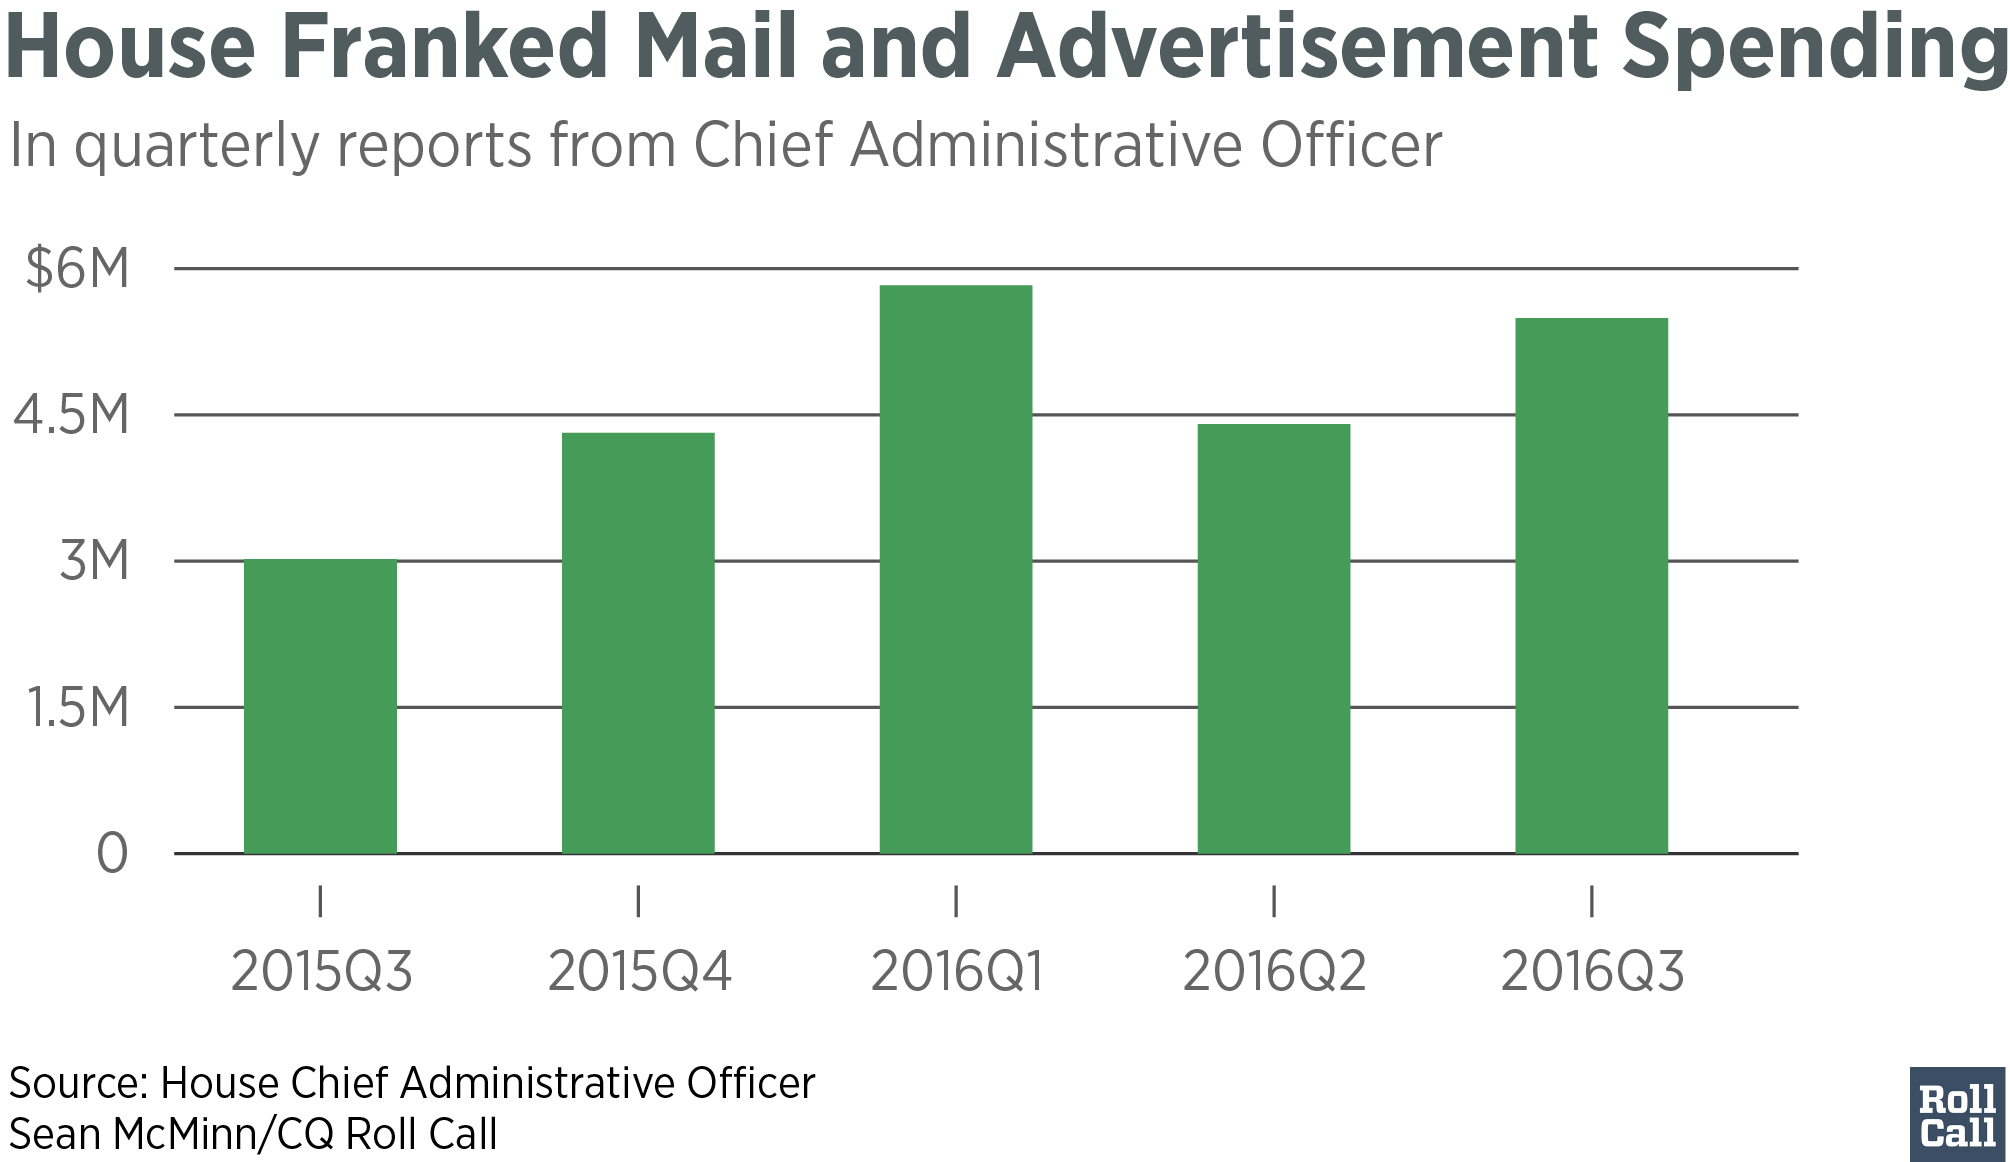 house_franked_mail_and_advertisement_spending_amount_chartbuilder-01